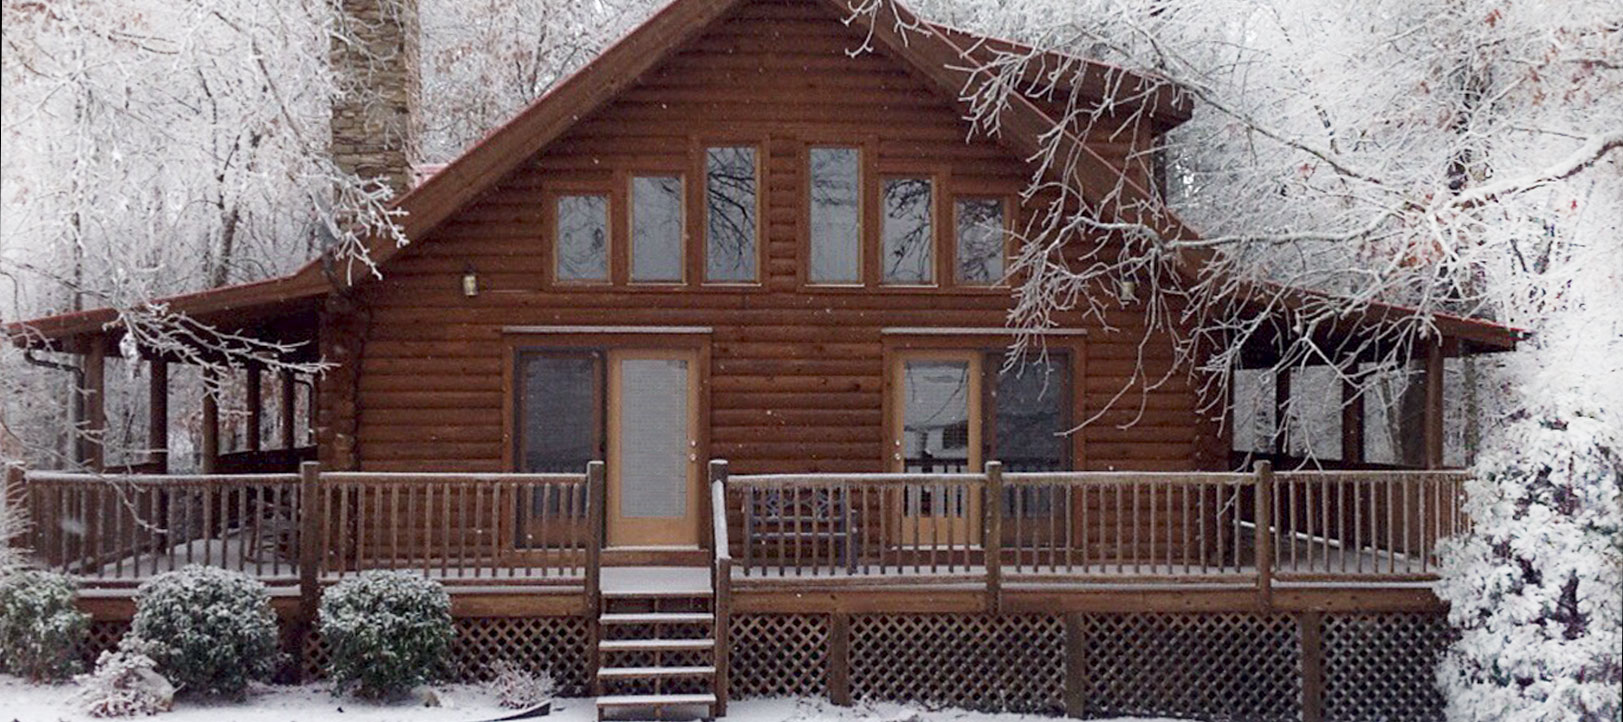 Fall creek falls cabins and tennessee vacation rentals deer creek properties tennessee cabin rentals